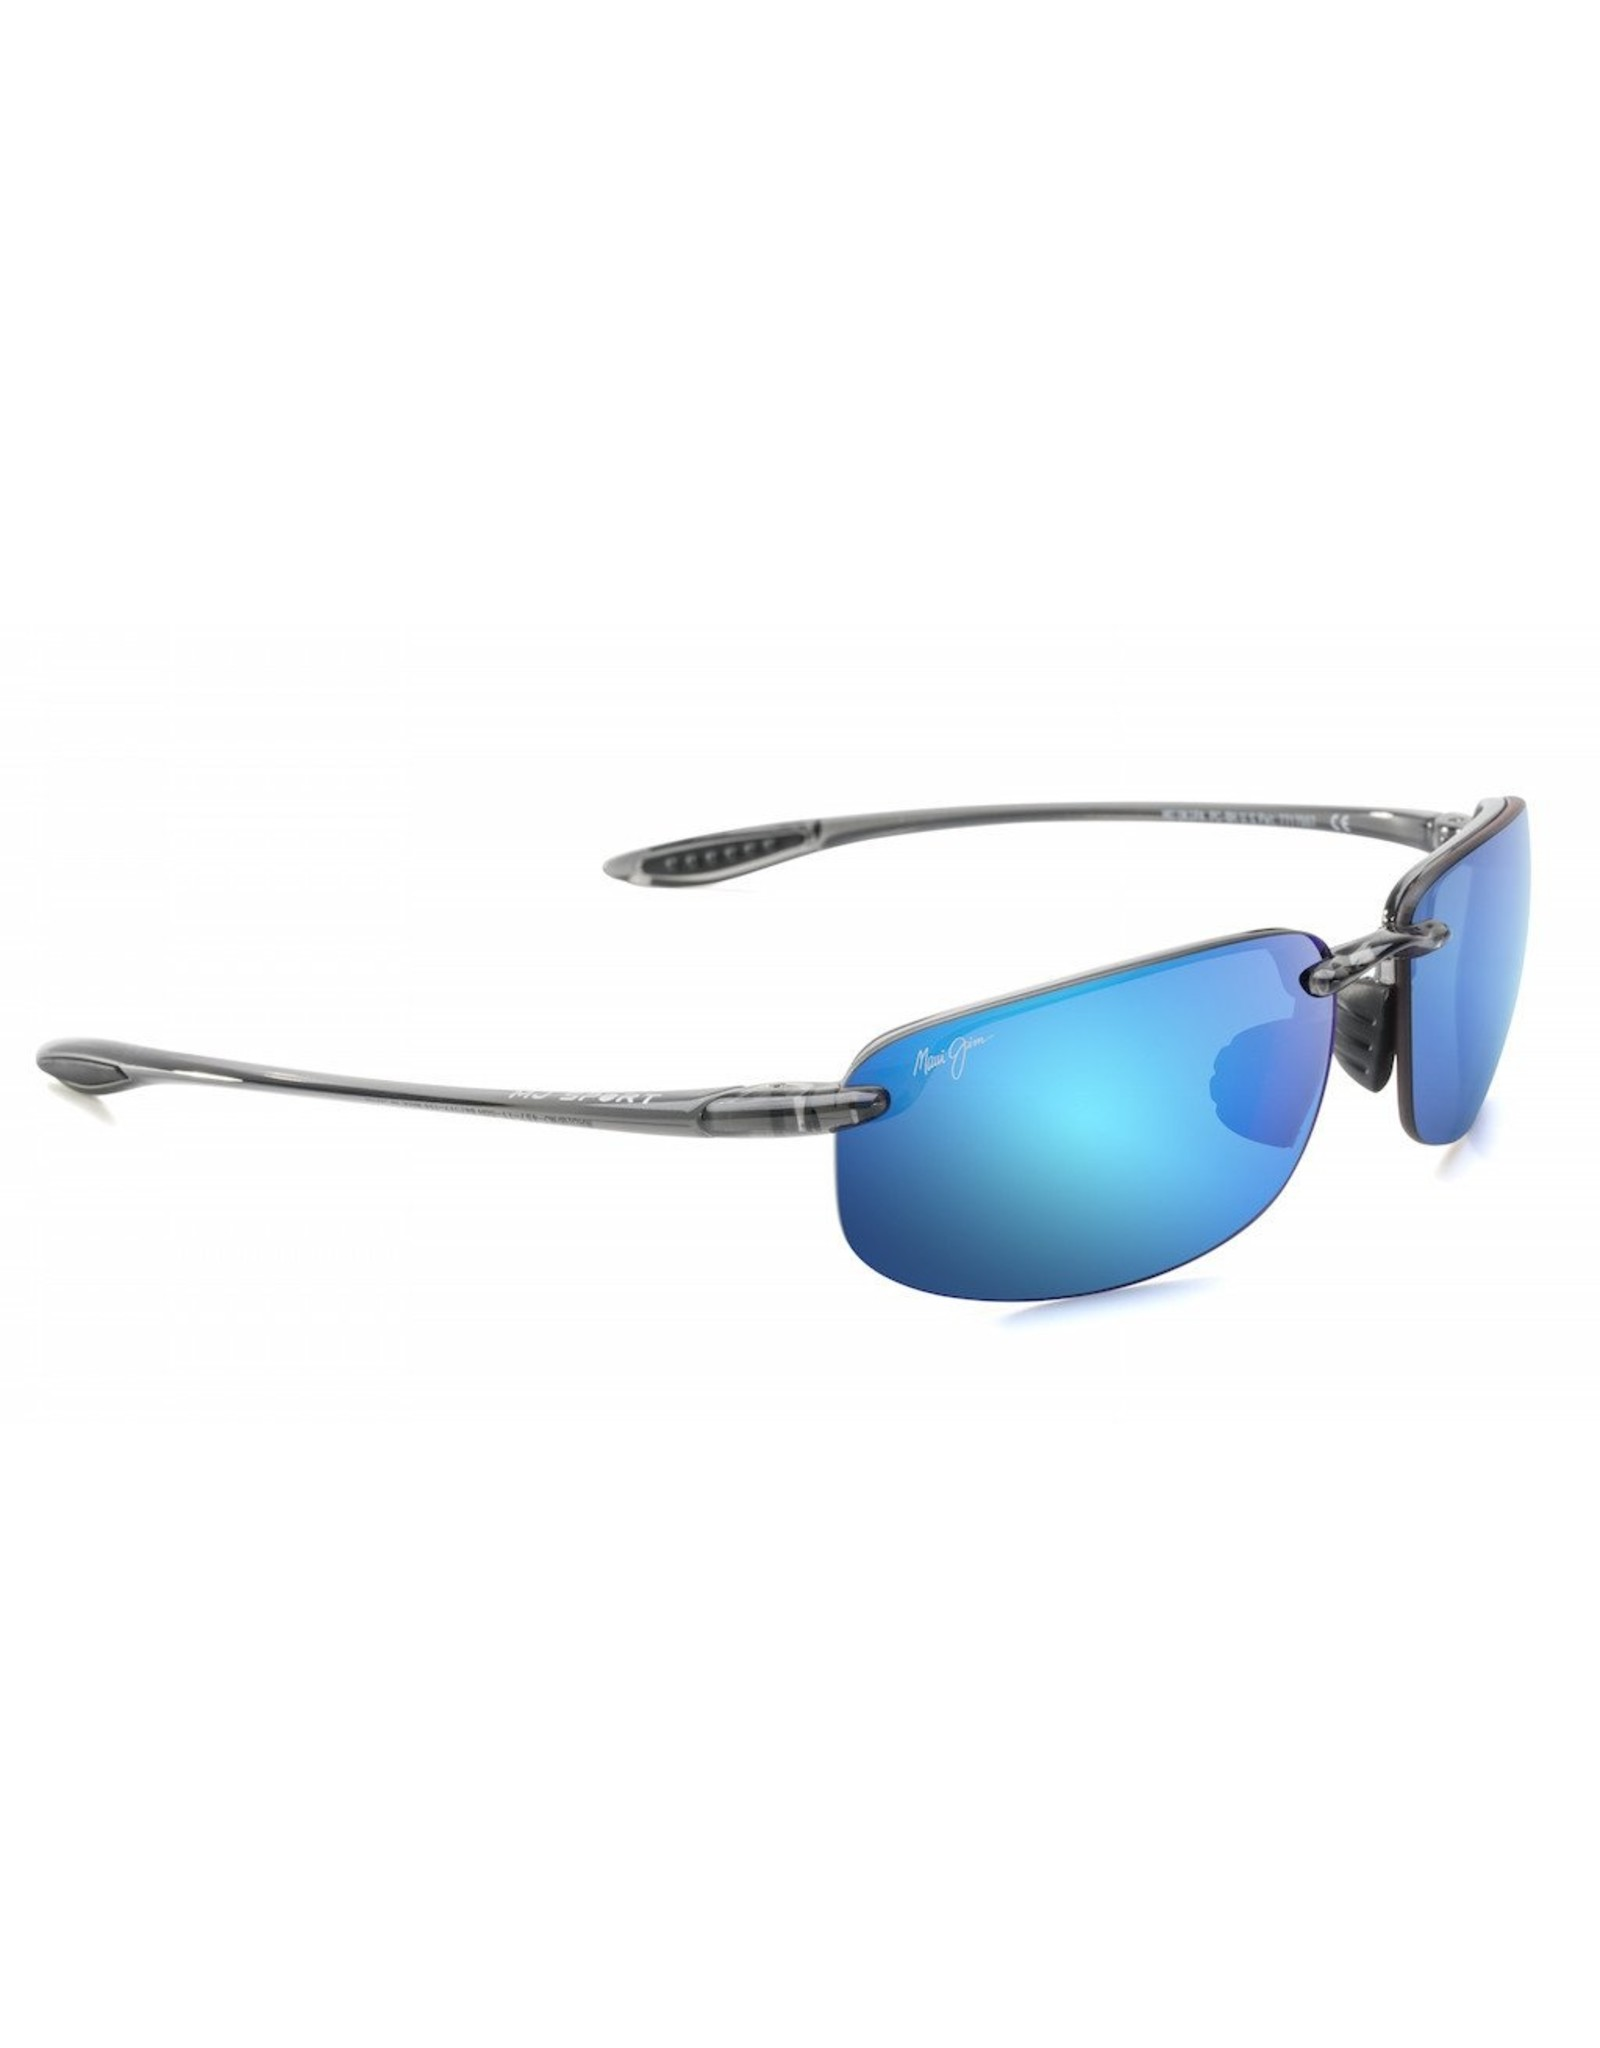 Maui Jim Maui Jim 'HO'OKIPA Reader' Glasses